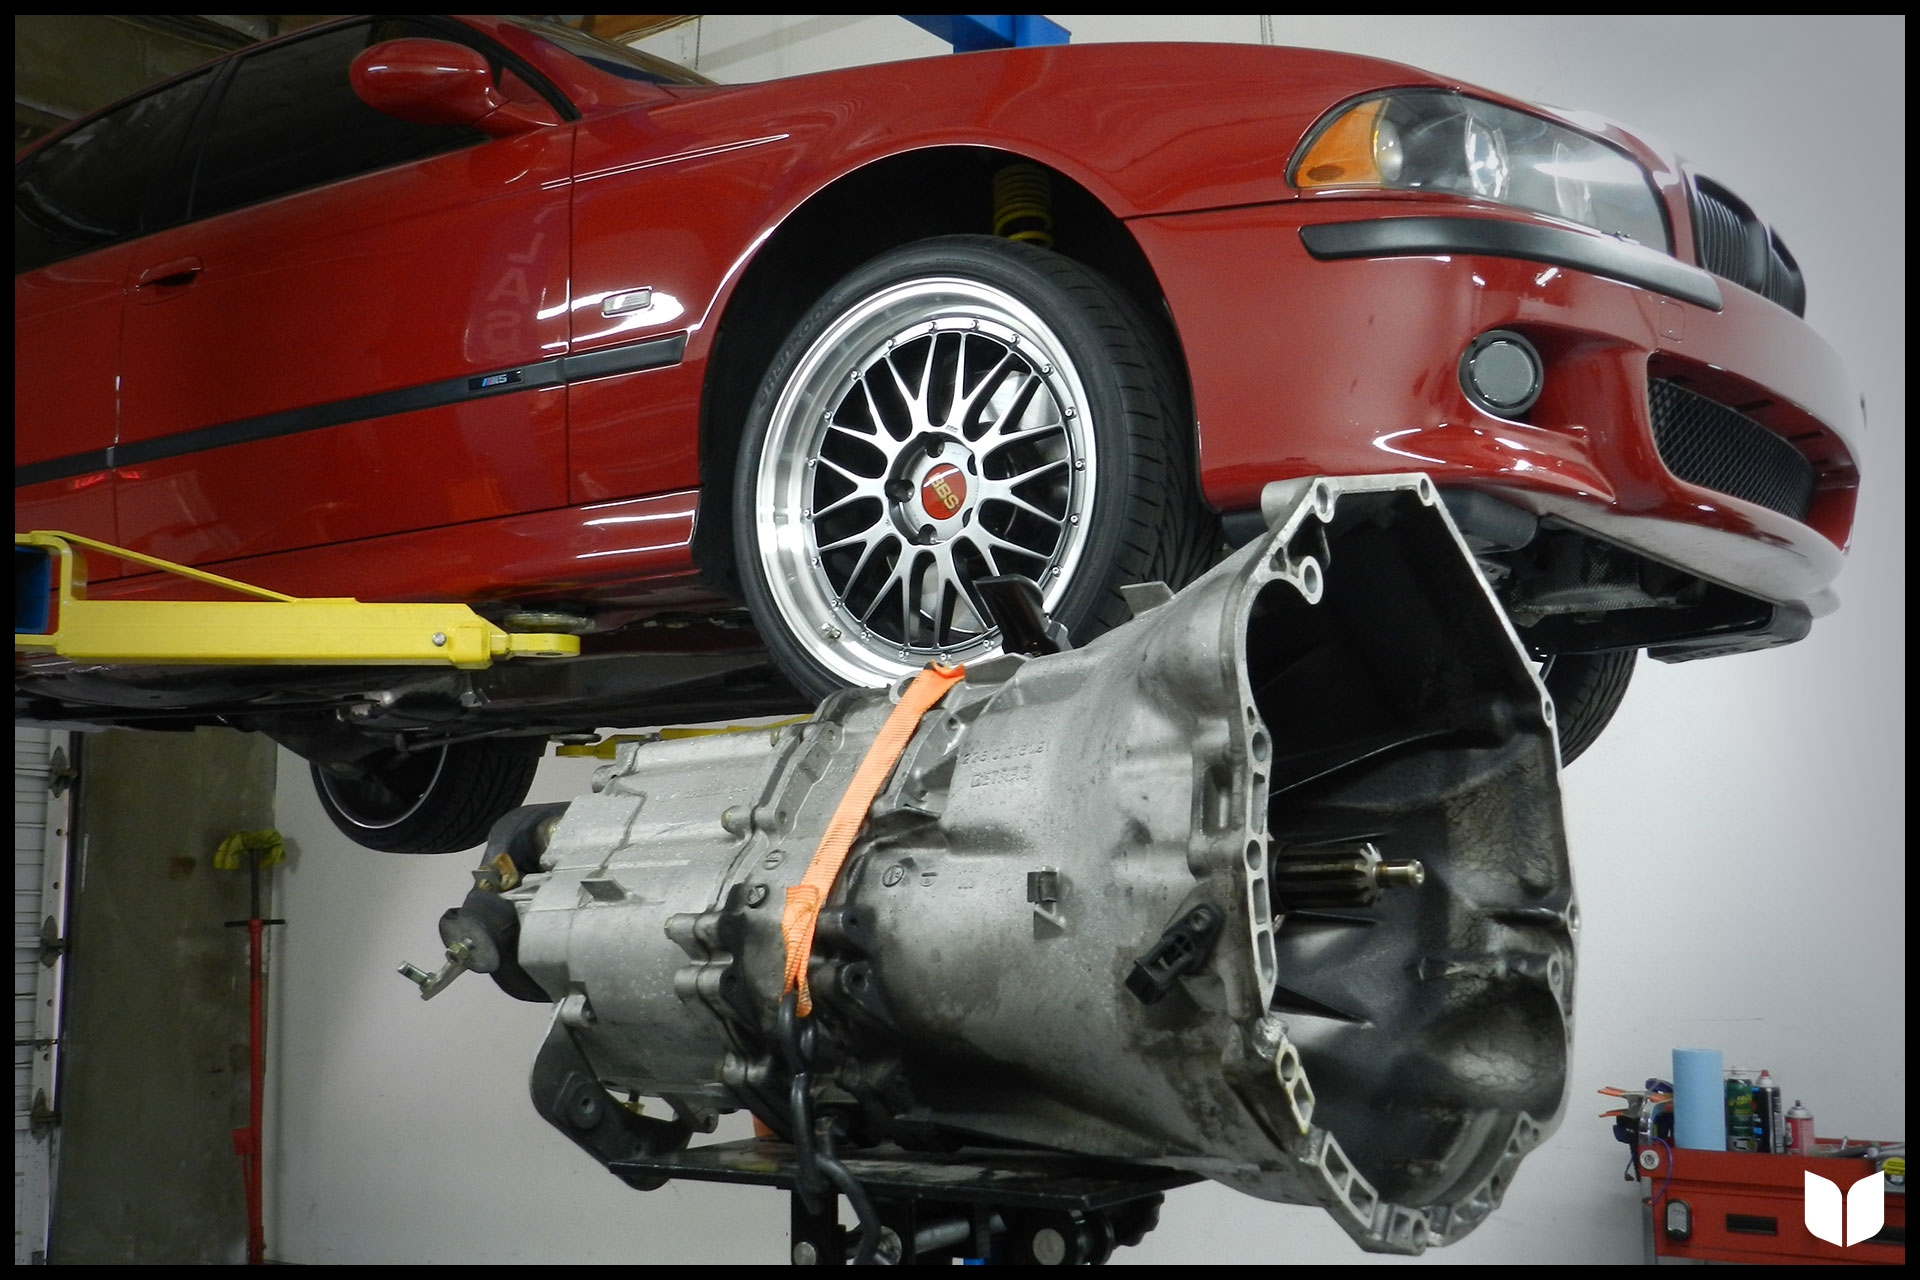 BMW Service Maintenance Repair Parts Score Scottsdale Phoenix Arizona AZ